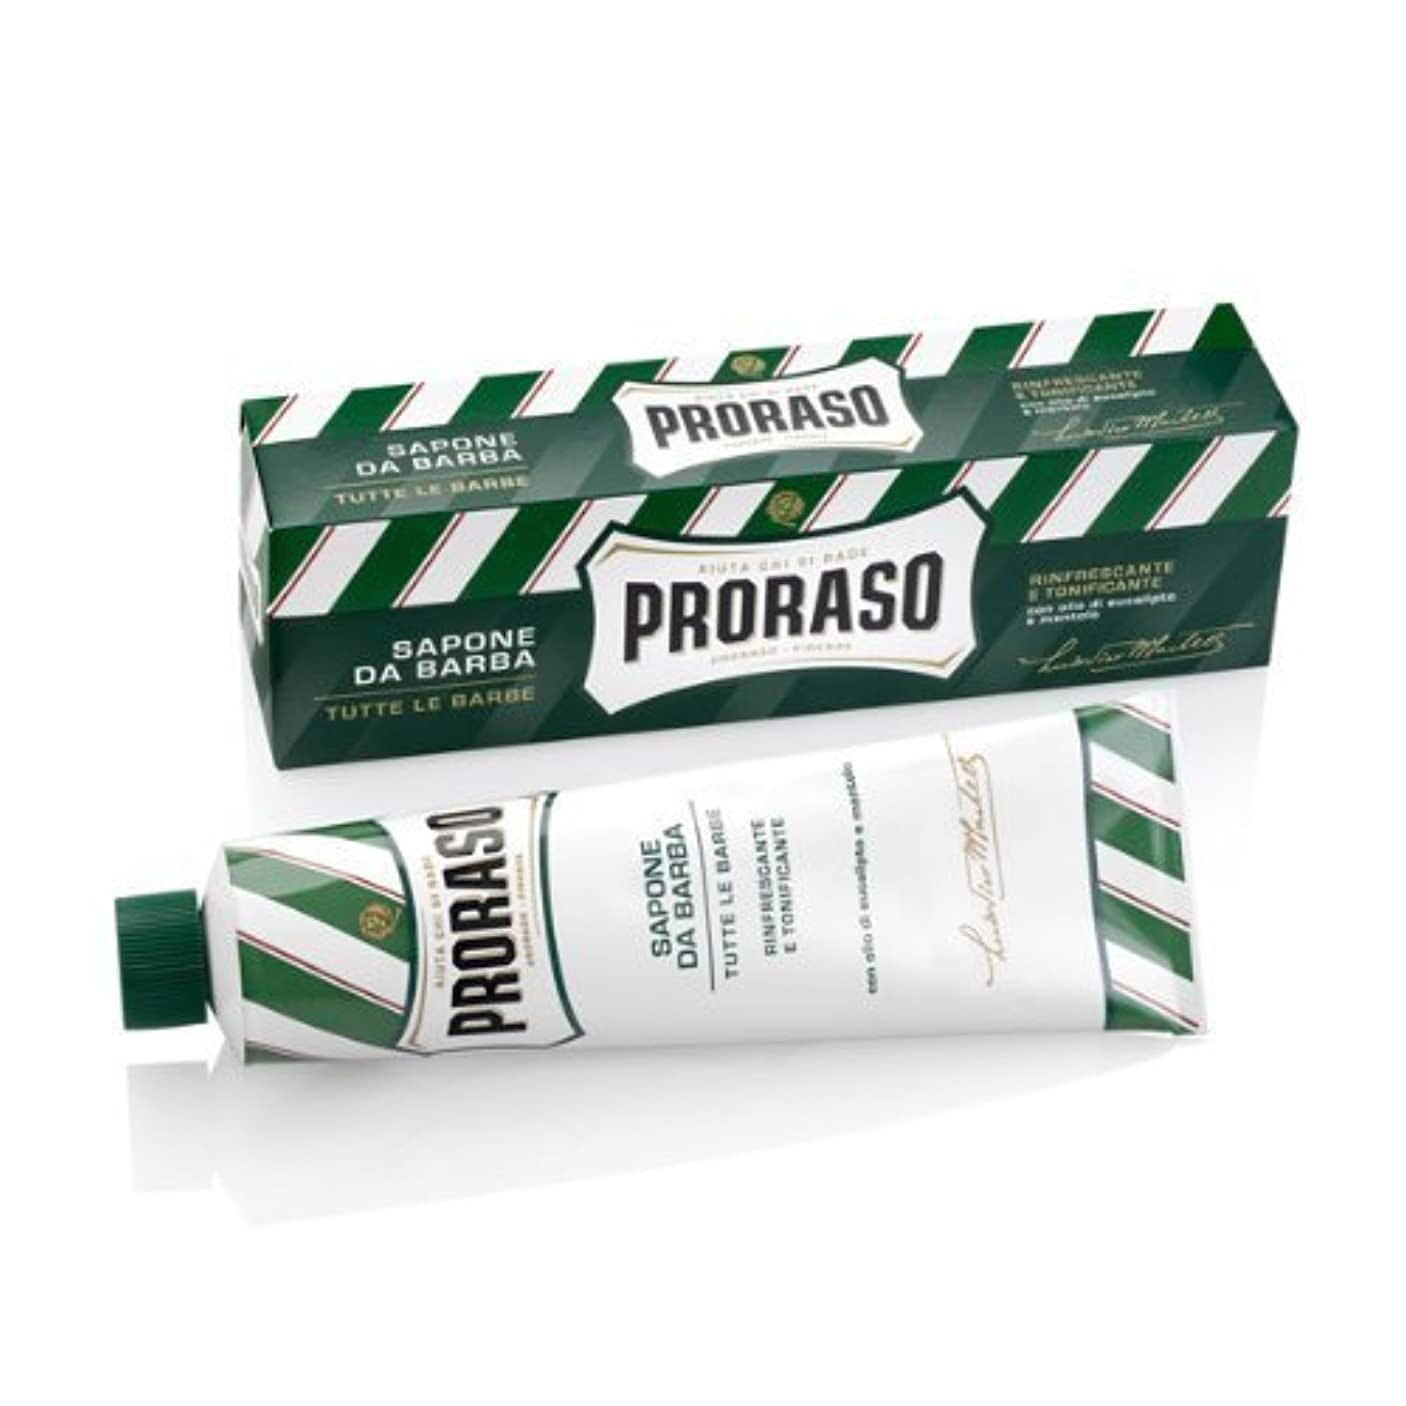 動作序文満州Proraso Eucalyptus & Menthol Shaving Cream - 150 ml. by Proraso [並行輸入品]